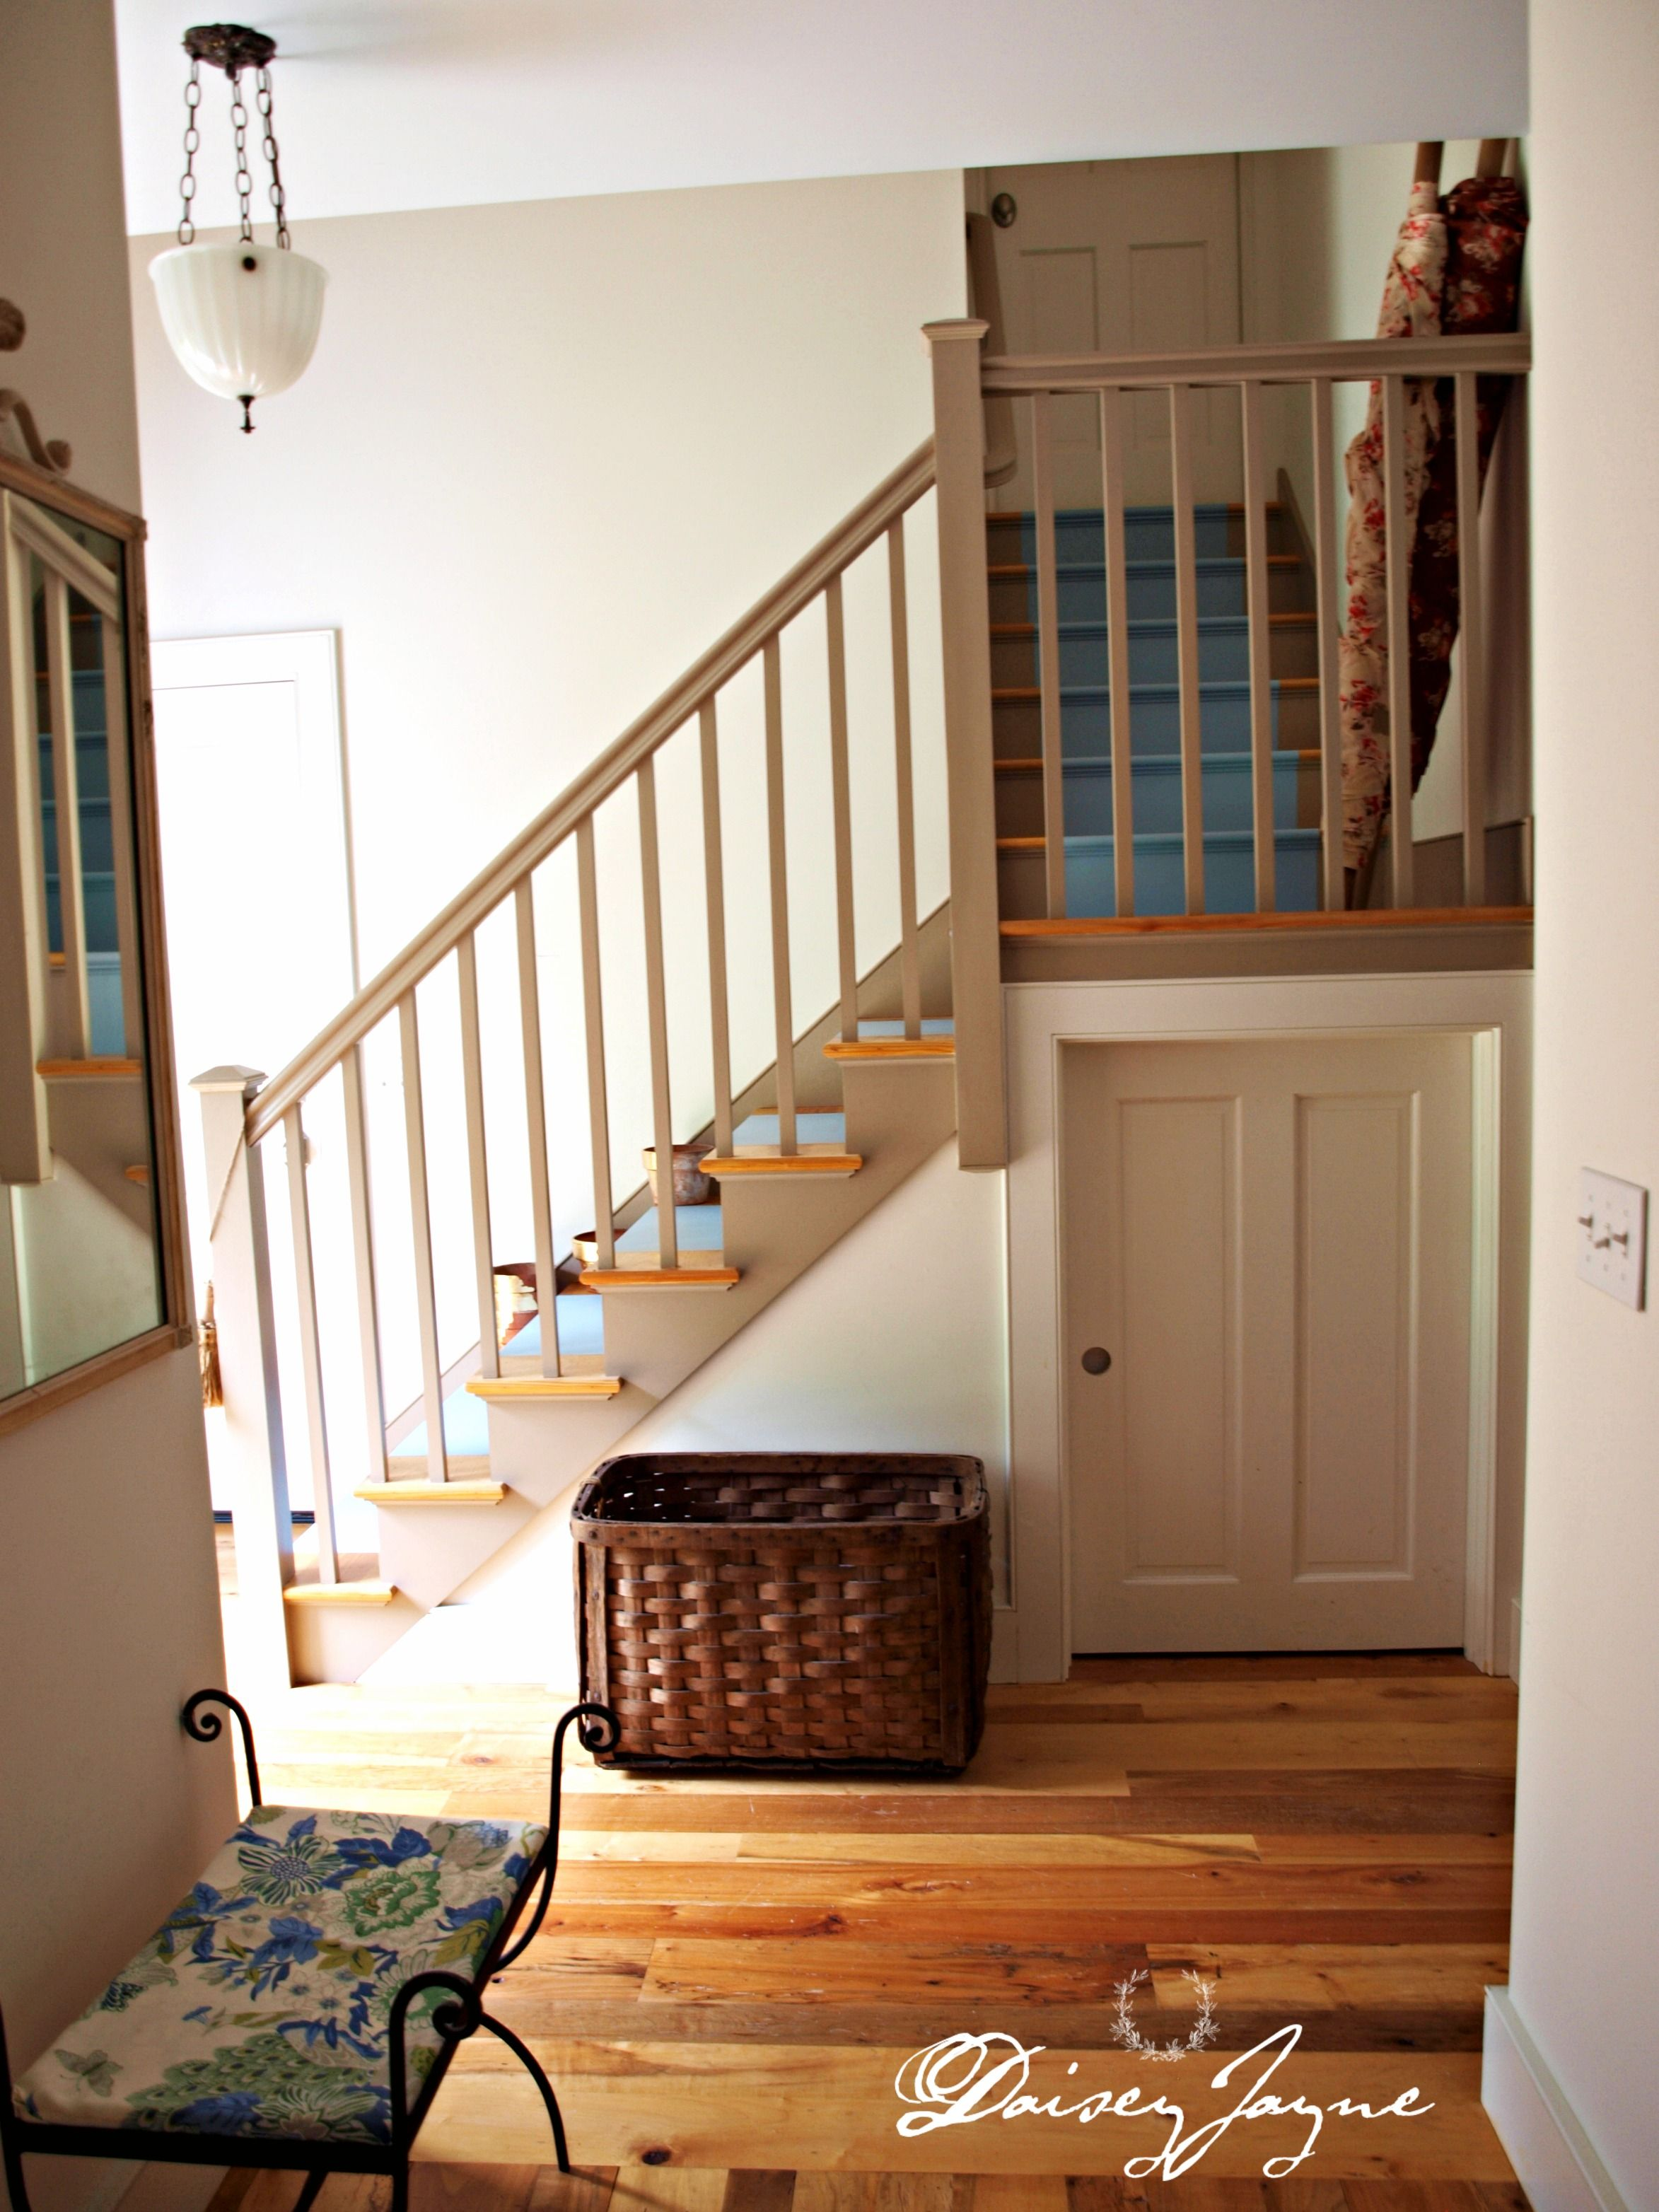 High Quality Best Paint For Stair Banisters | Blue Chenille Carpet Runner For Stairs  With Simplistic Wooden Banister